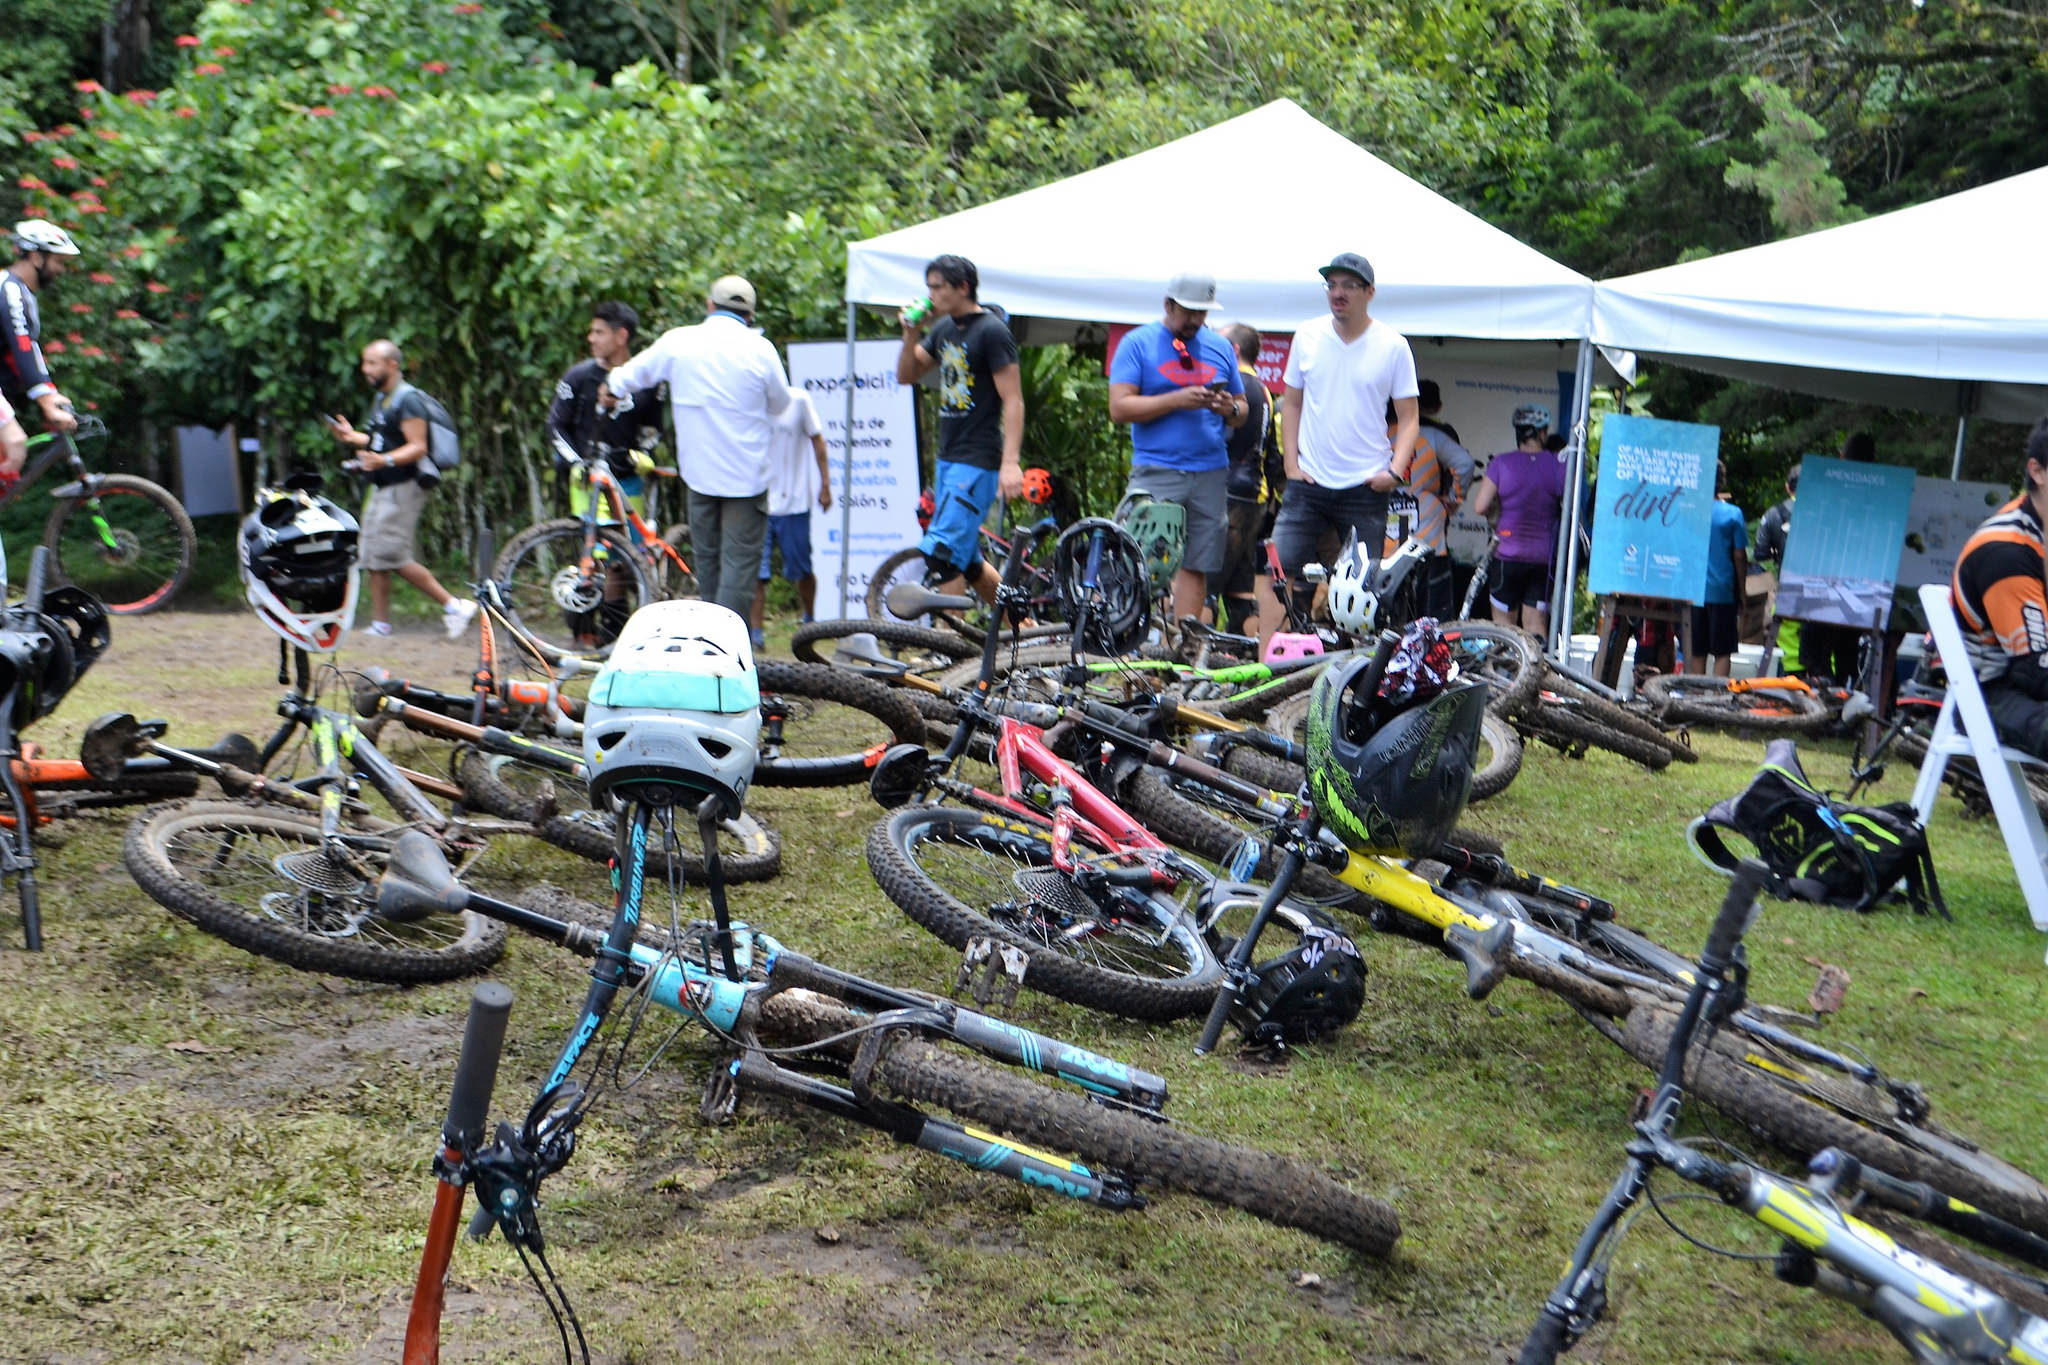 bike park, bike community, mtb life, mountain biking trails, gautemala city